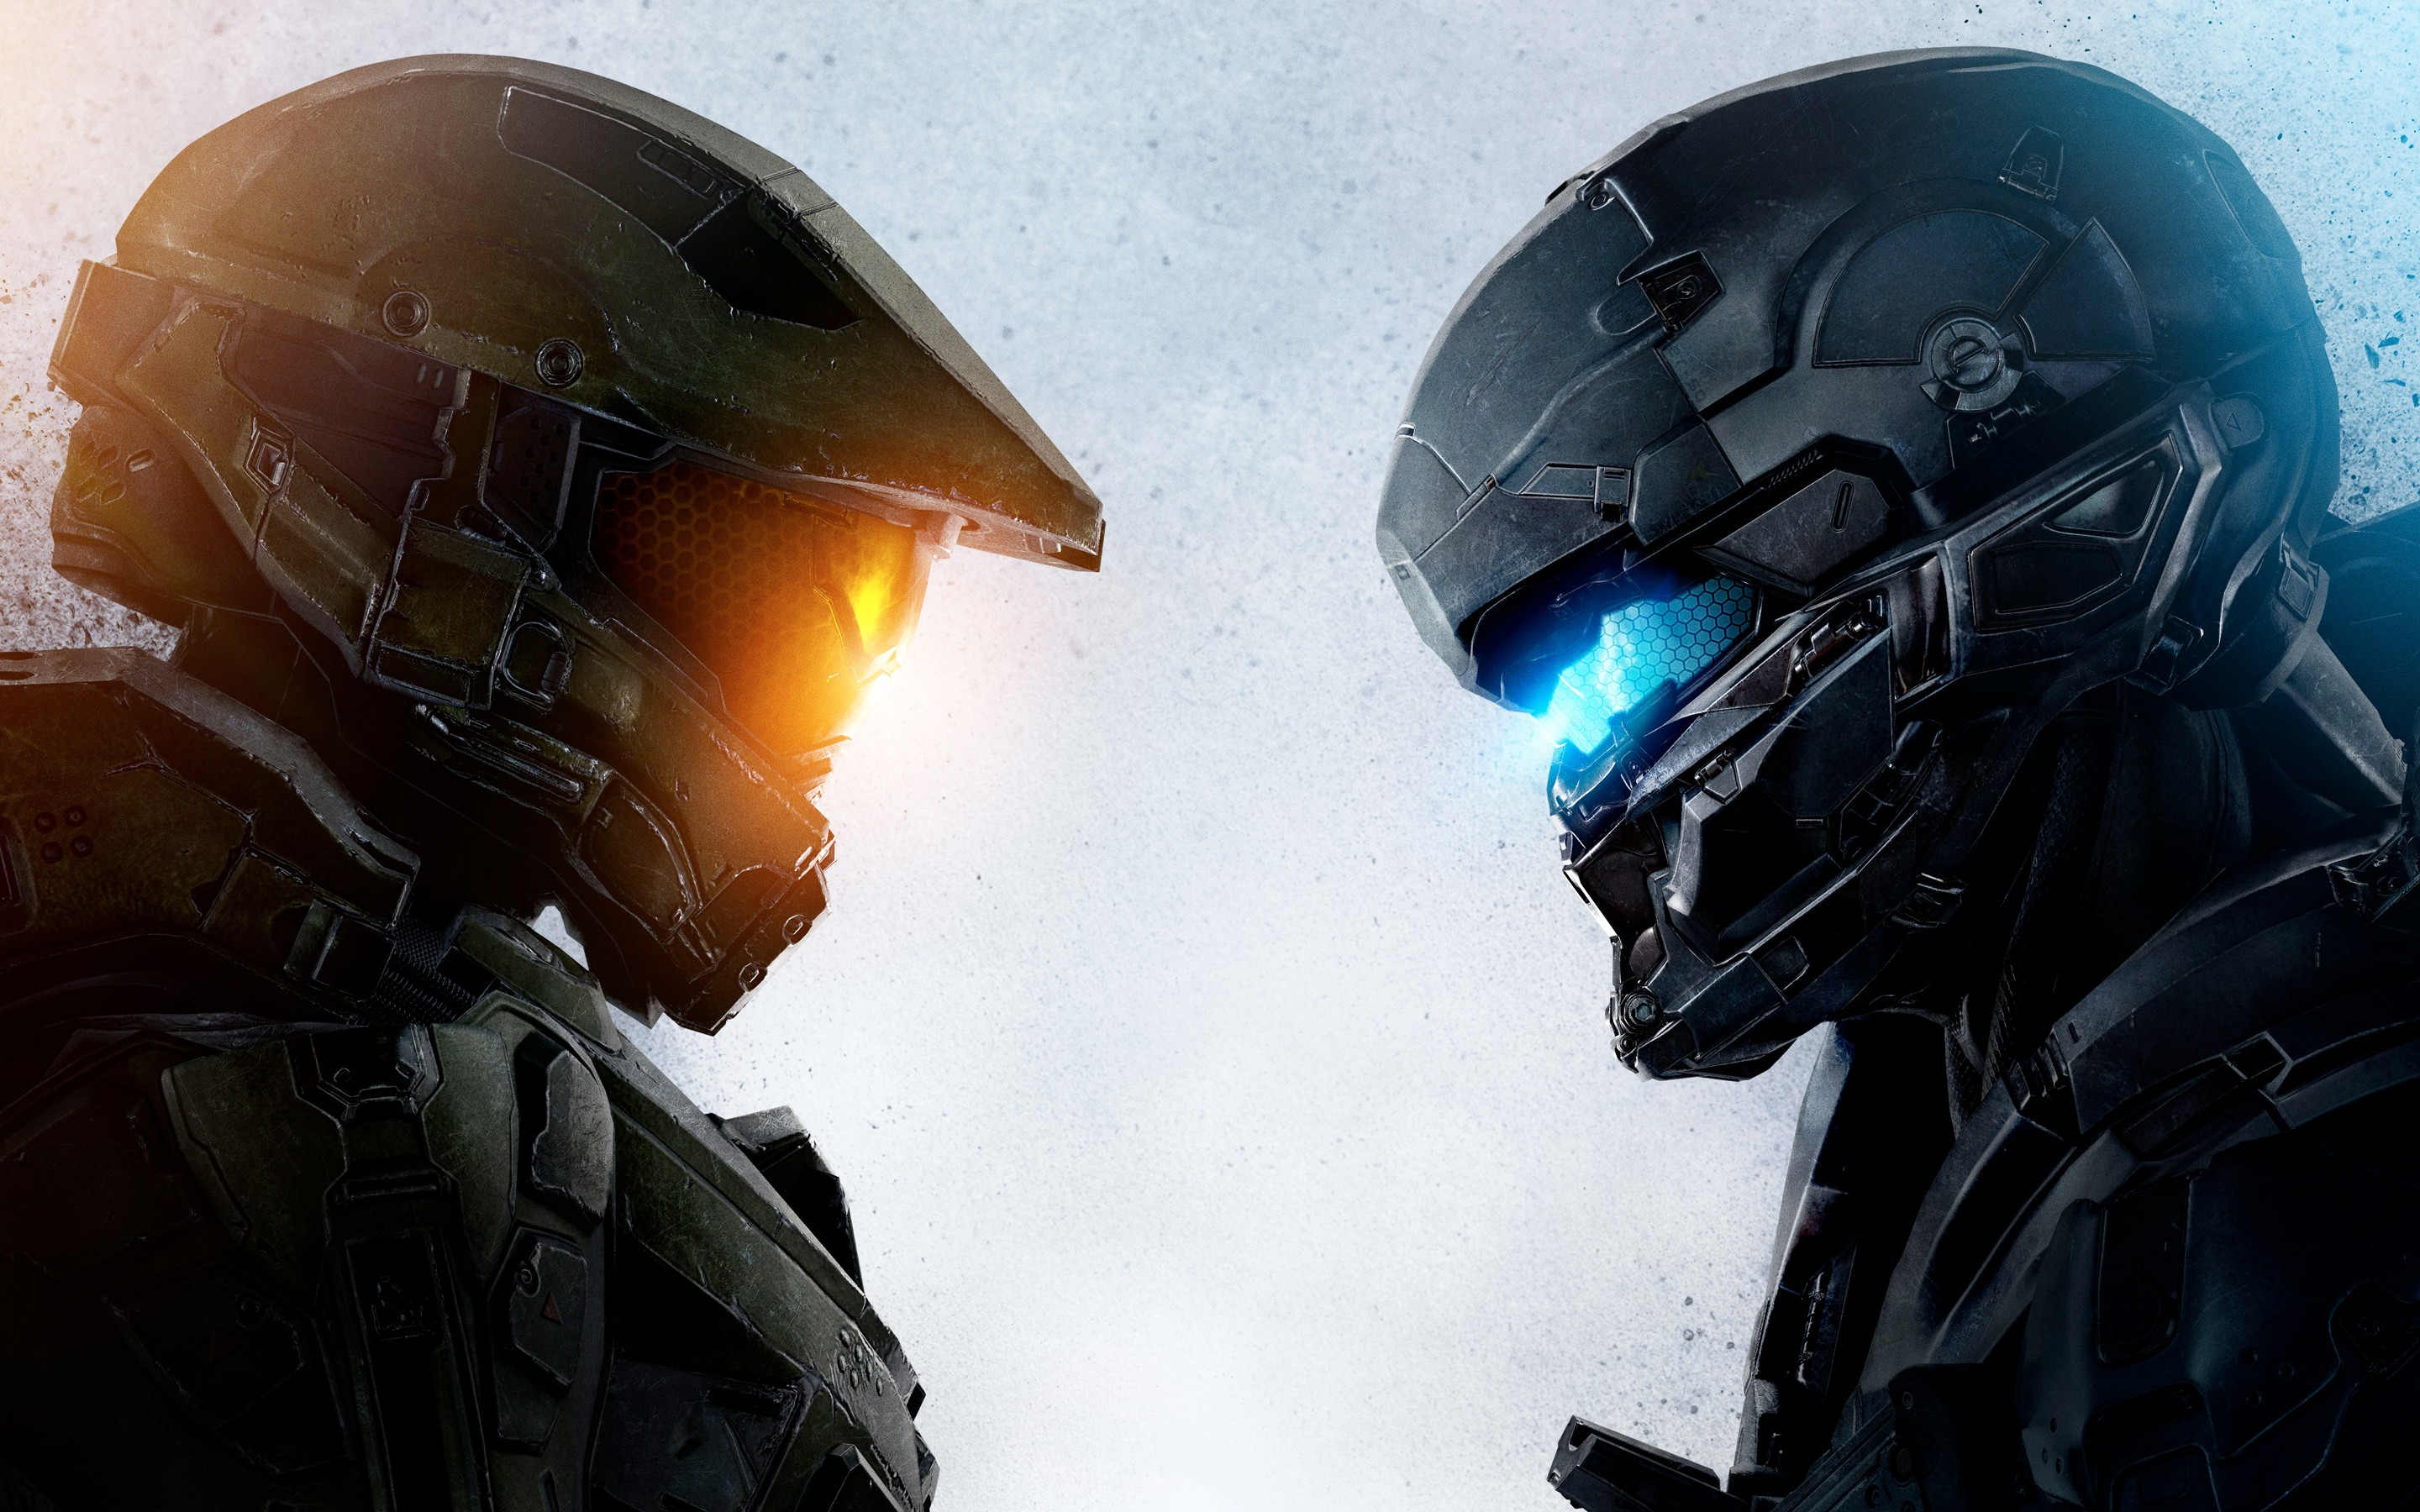 Halo 5 Guardians Wallpaper: 2048x1152 Halo 5 Guardians Game 2048x1152 Resolution HD 4k